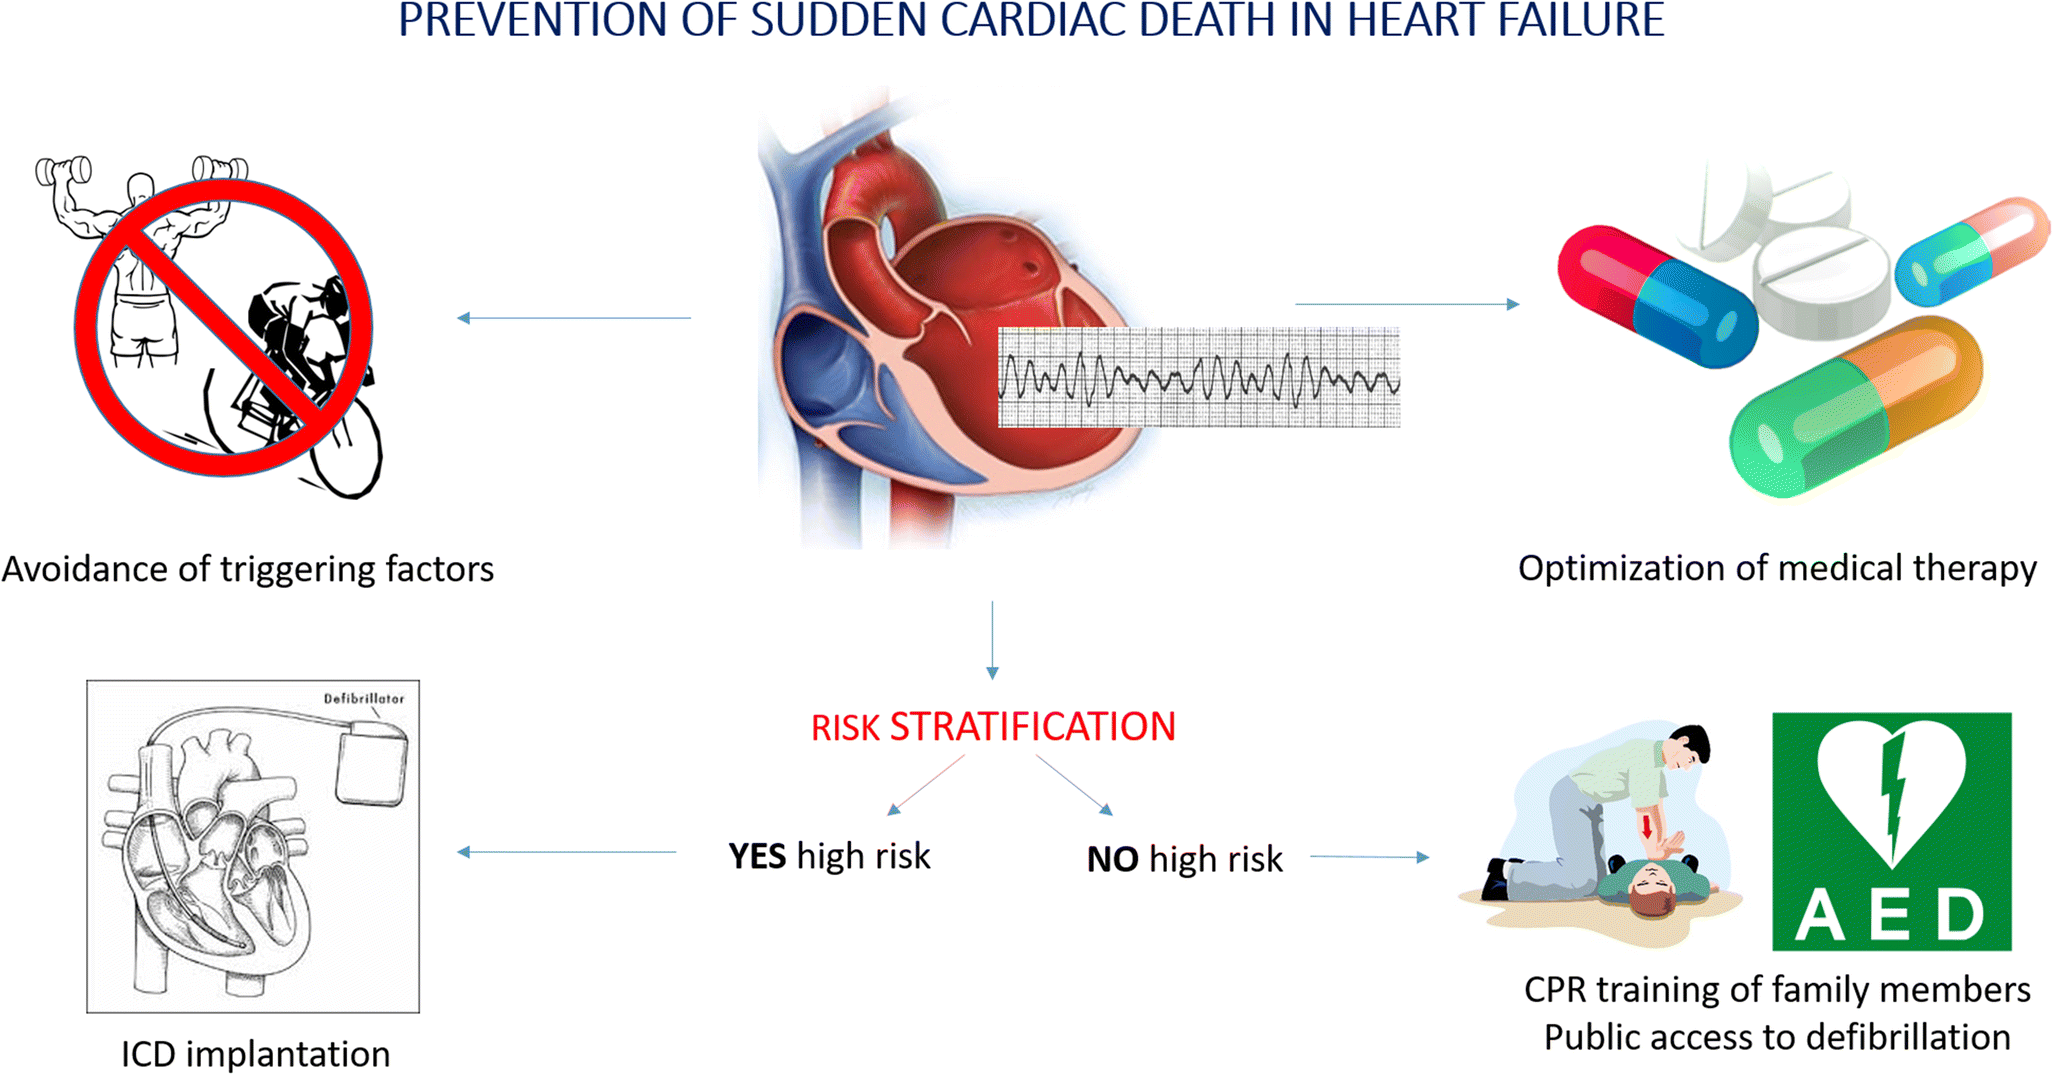 Current challenges in sudden cardiac death prevention